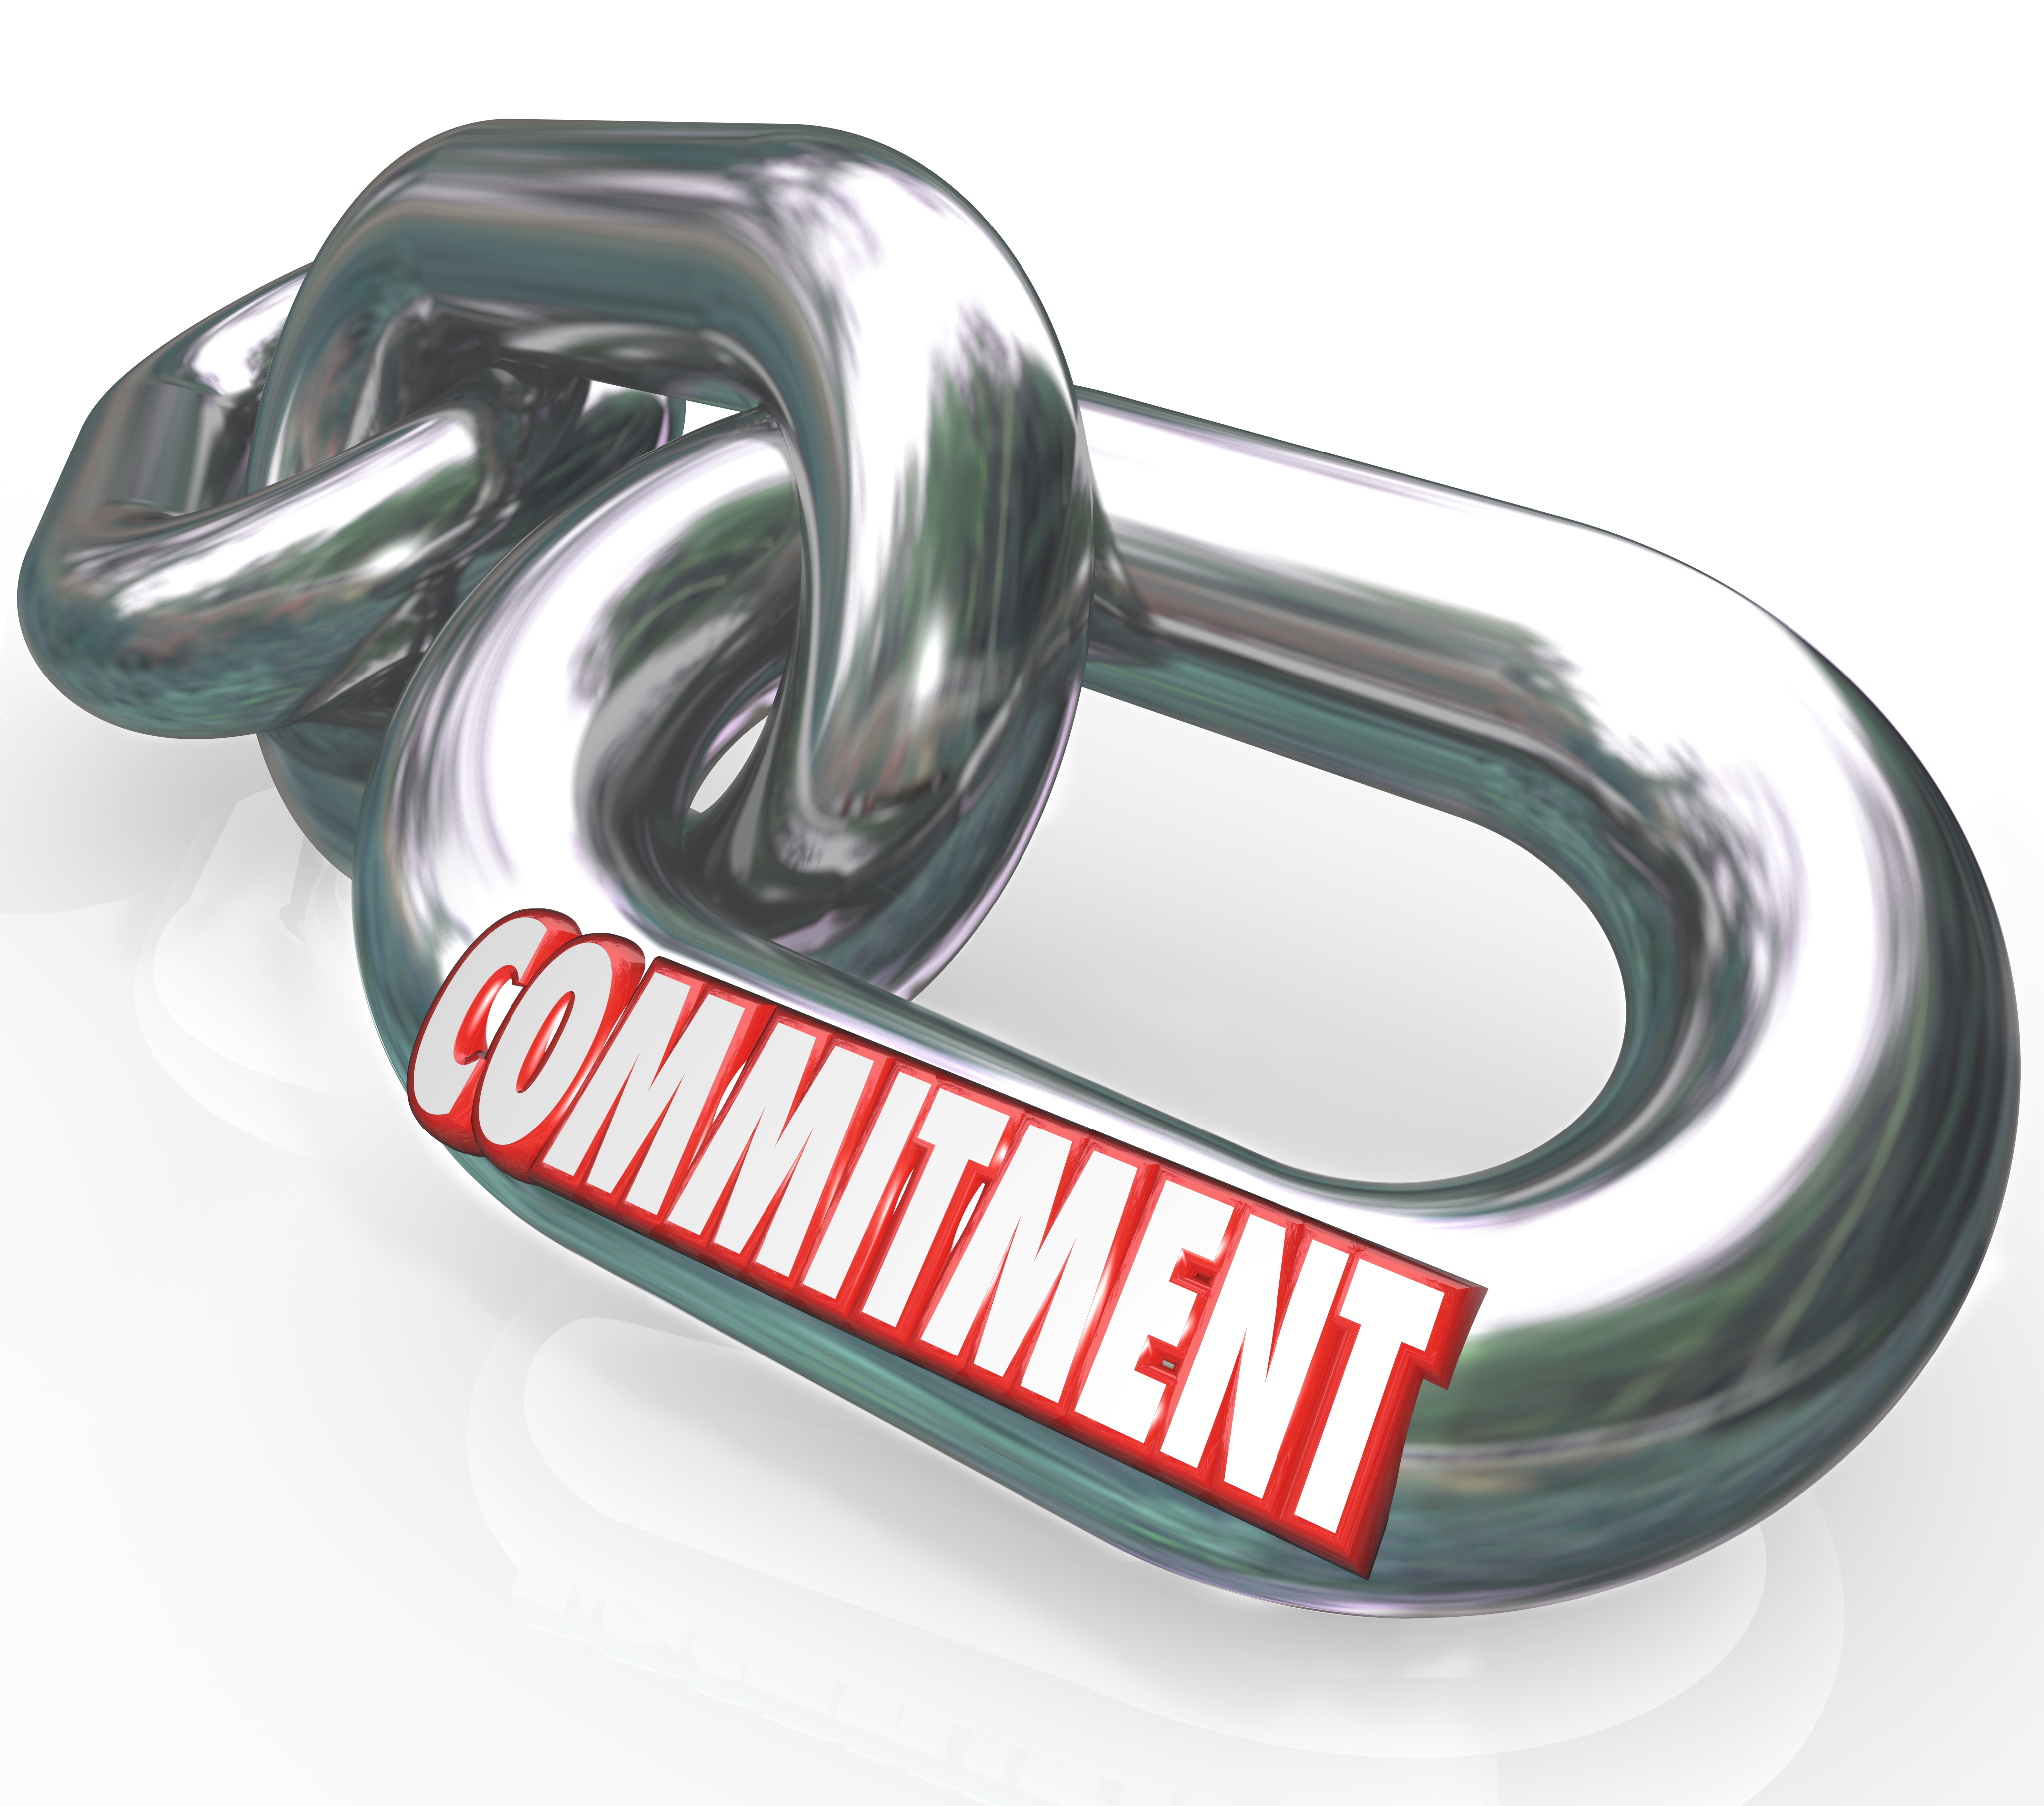 Drawing of a chain with Commitment written on it. Represents that One of the most important Property Investing Secret is to be commited